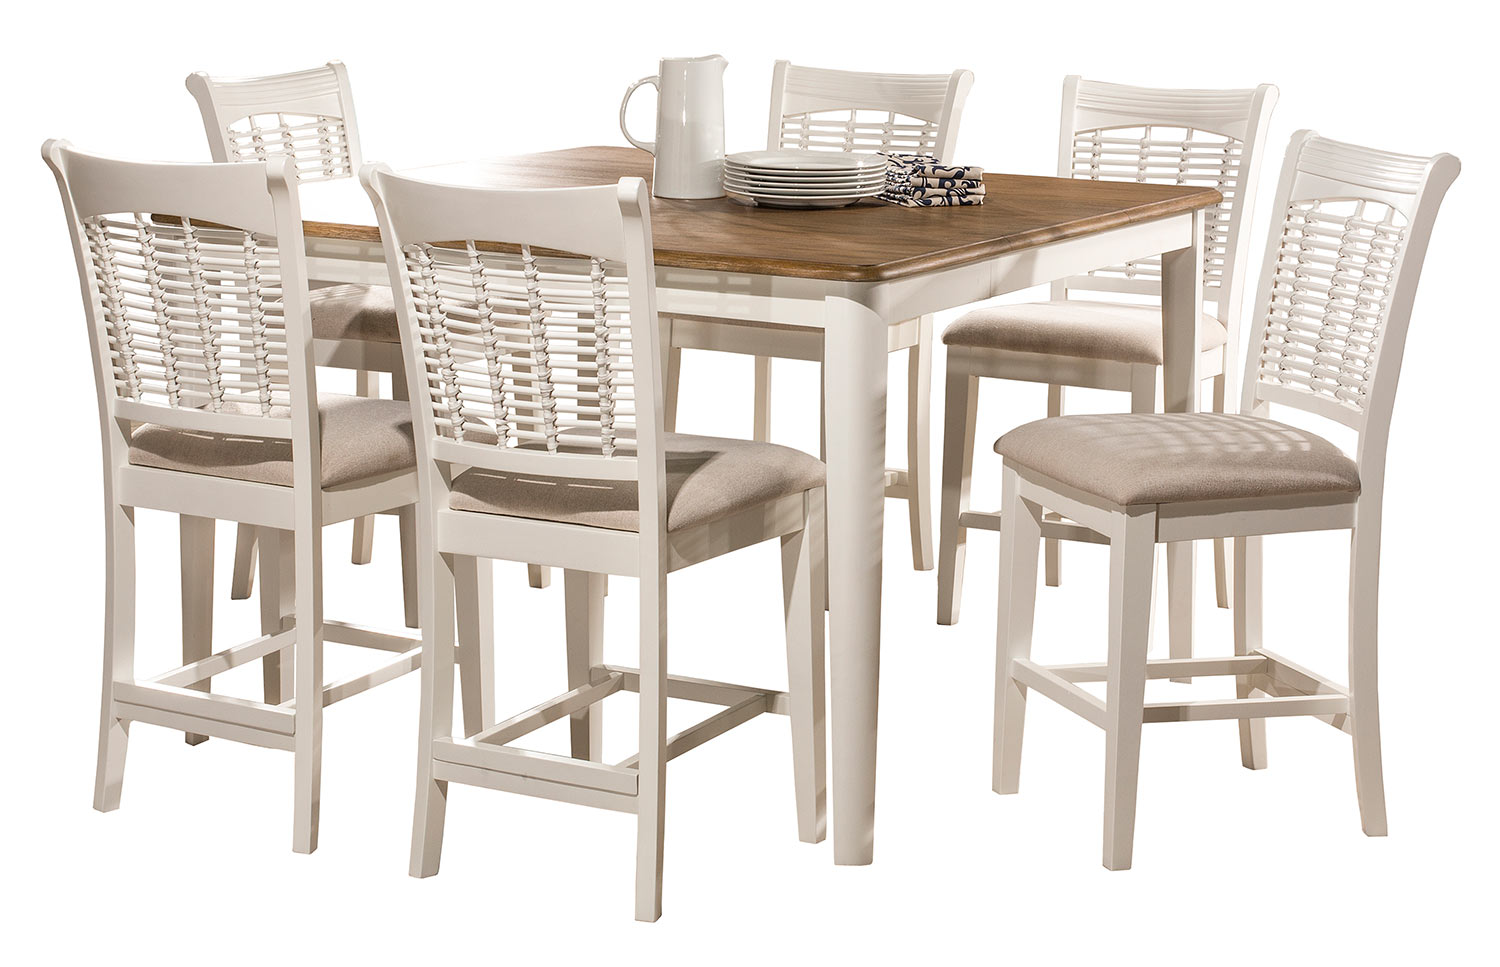 Hillsdale Bayberry 7-Piece Counter Height Dining Set - White/Driftwood